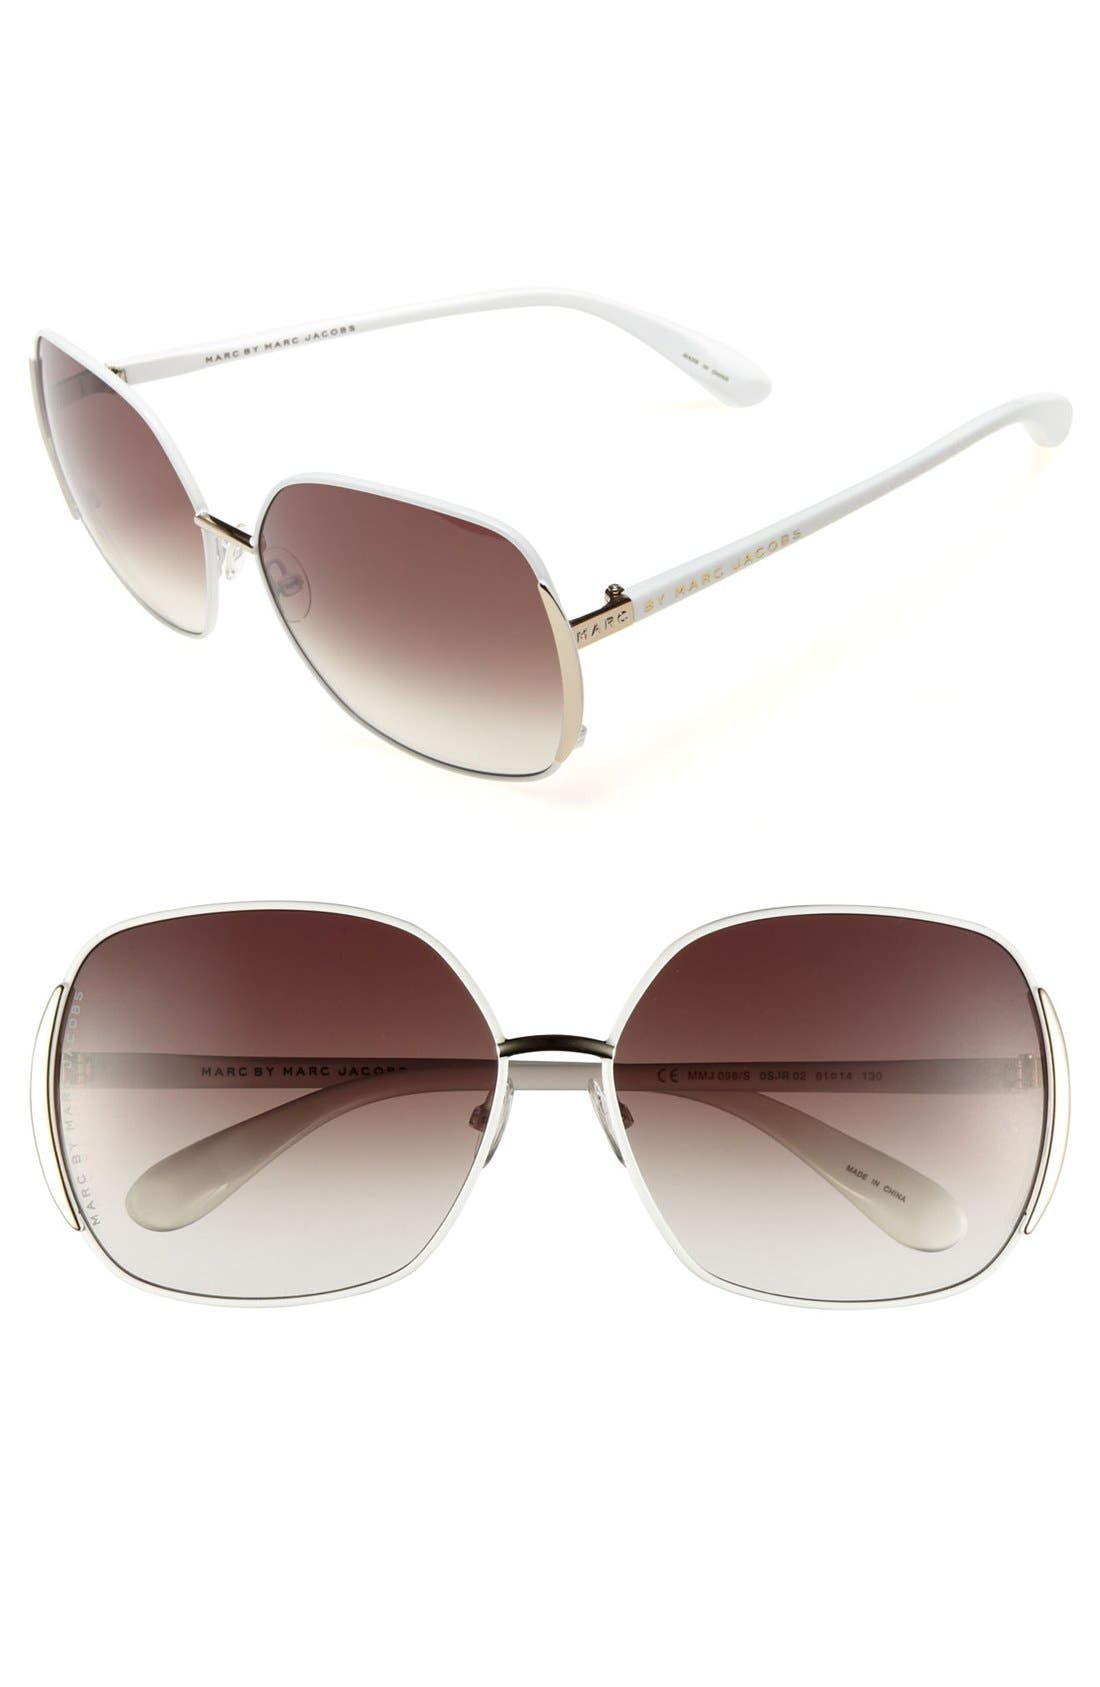 61mm Vintage Inspired Oversized Sunglasses,                         Main,                         color, Polished White